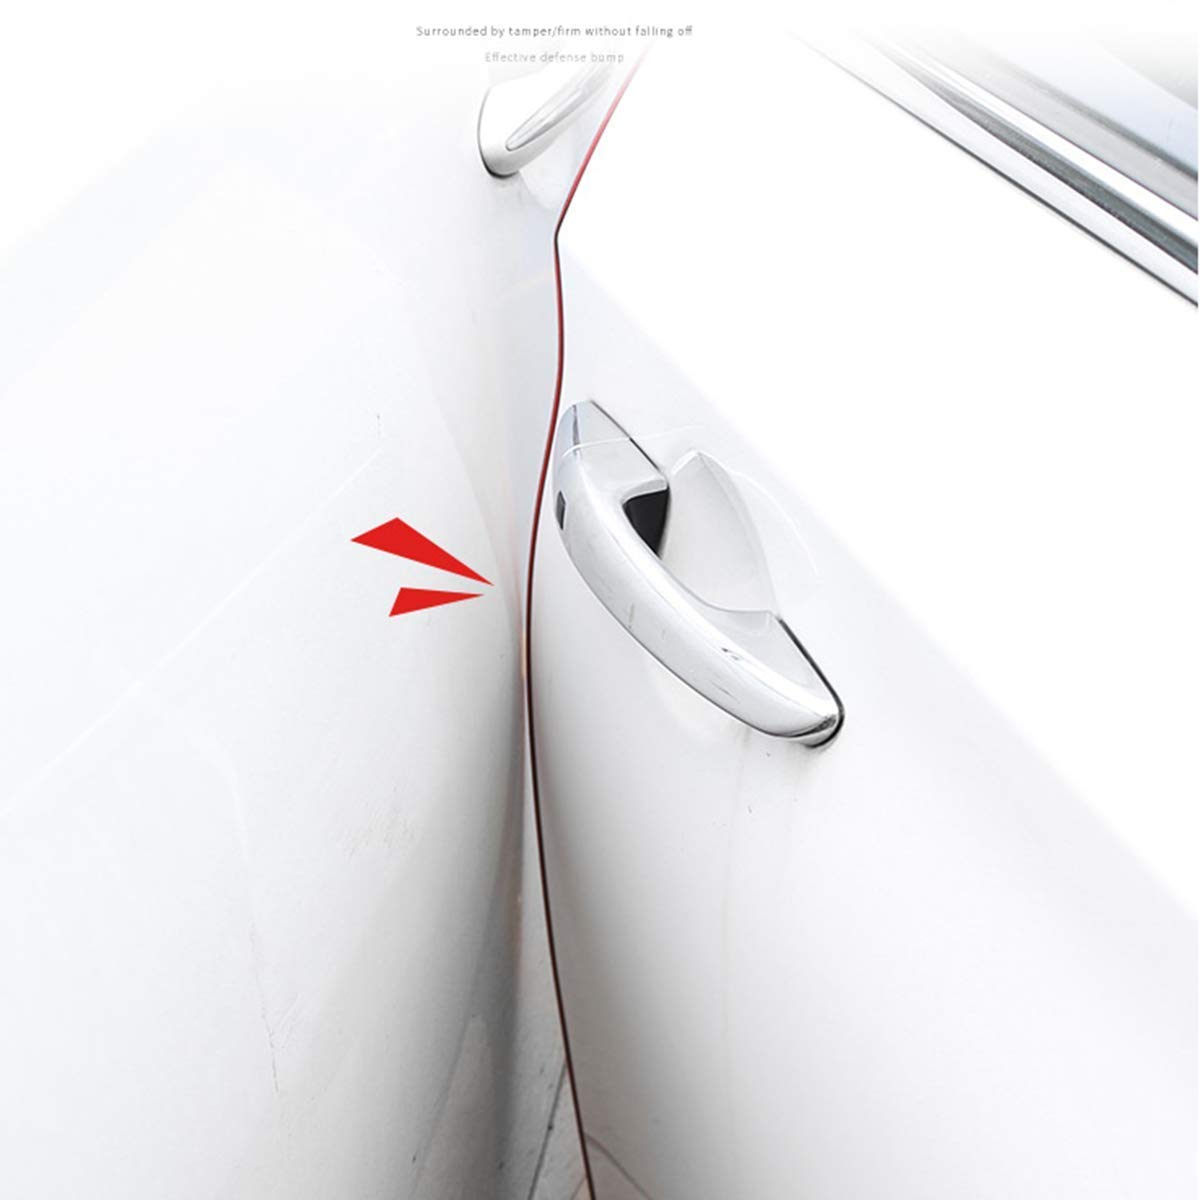 FXF998 car Door Edge guards-19FT 6M Electroplated red No Glue Needed Door Trim U-Shaped Trimming Plated Smooth Rubber Seal Protection for Most Cars